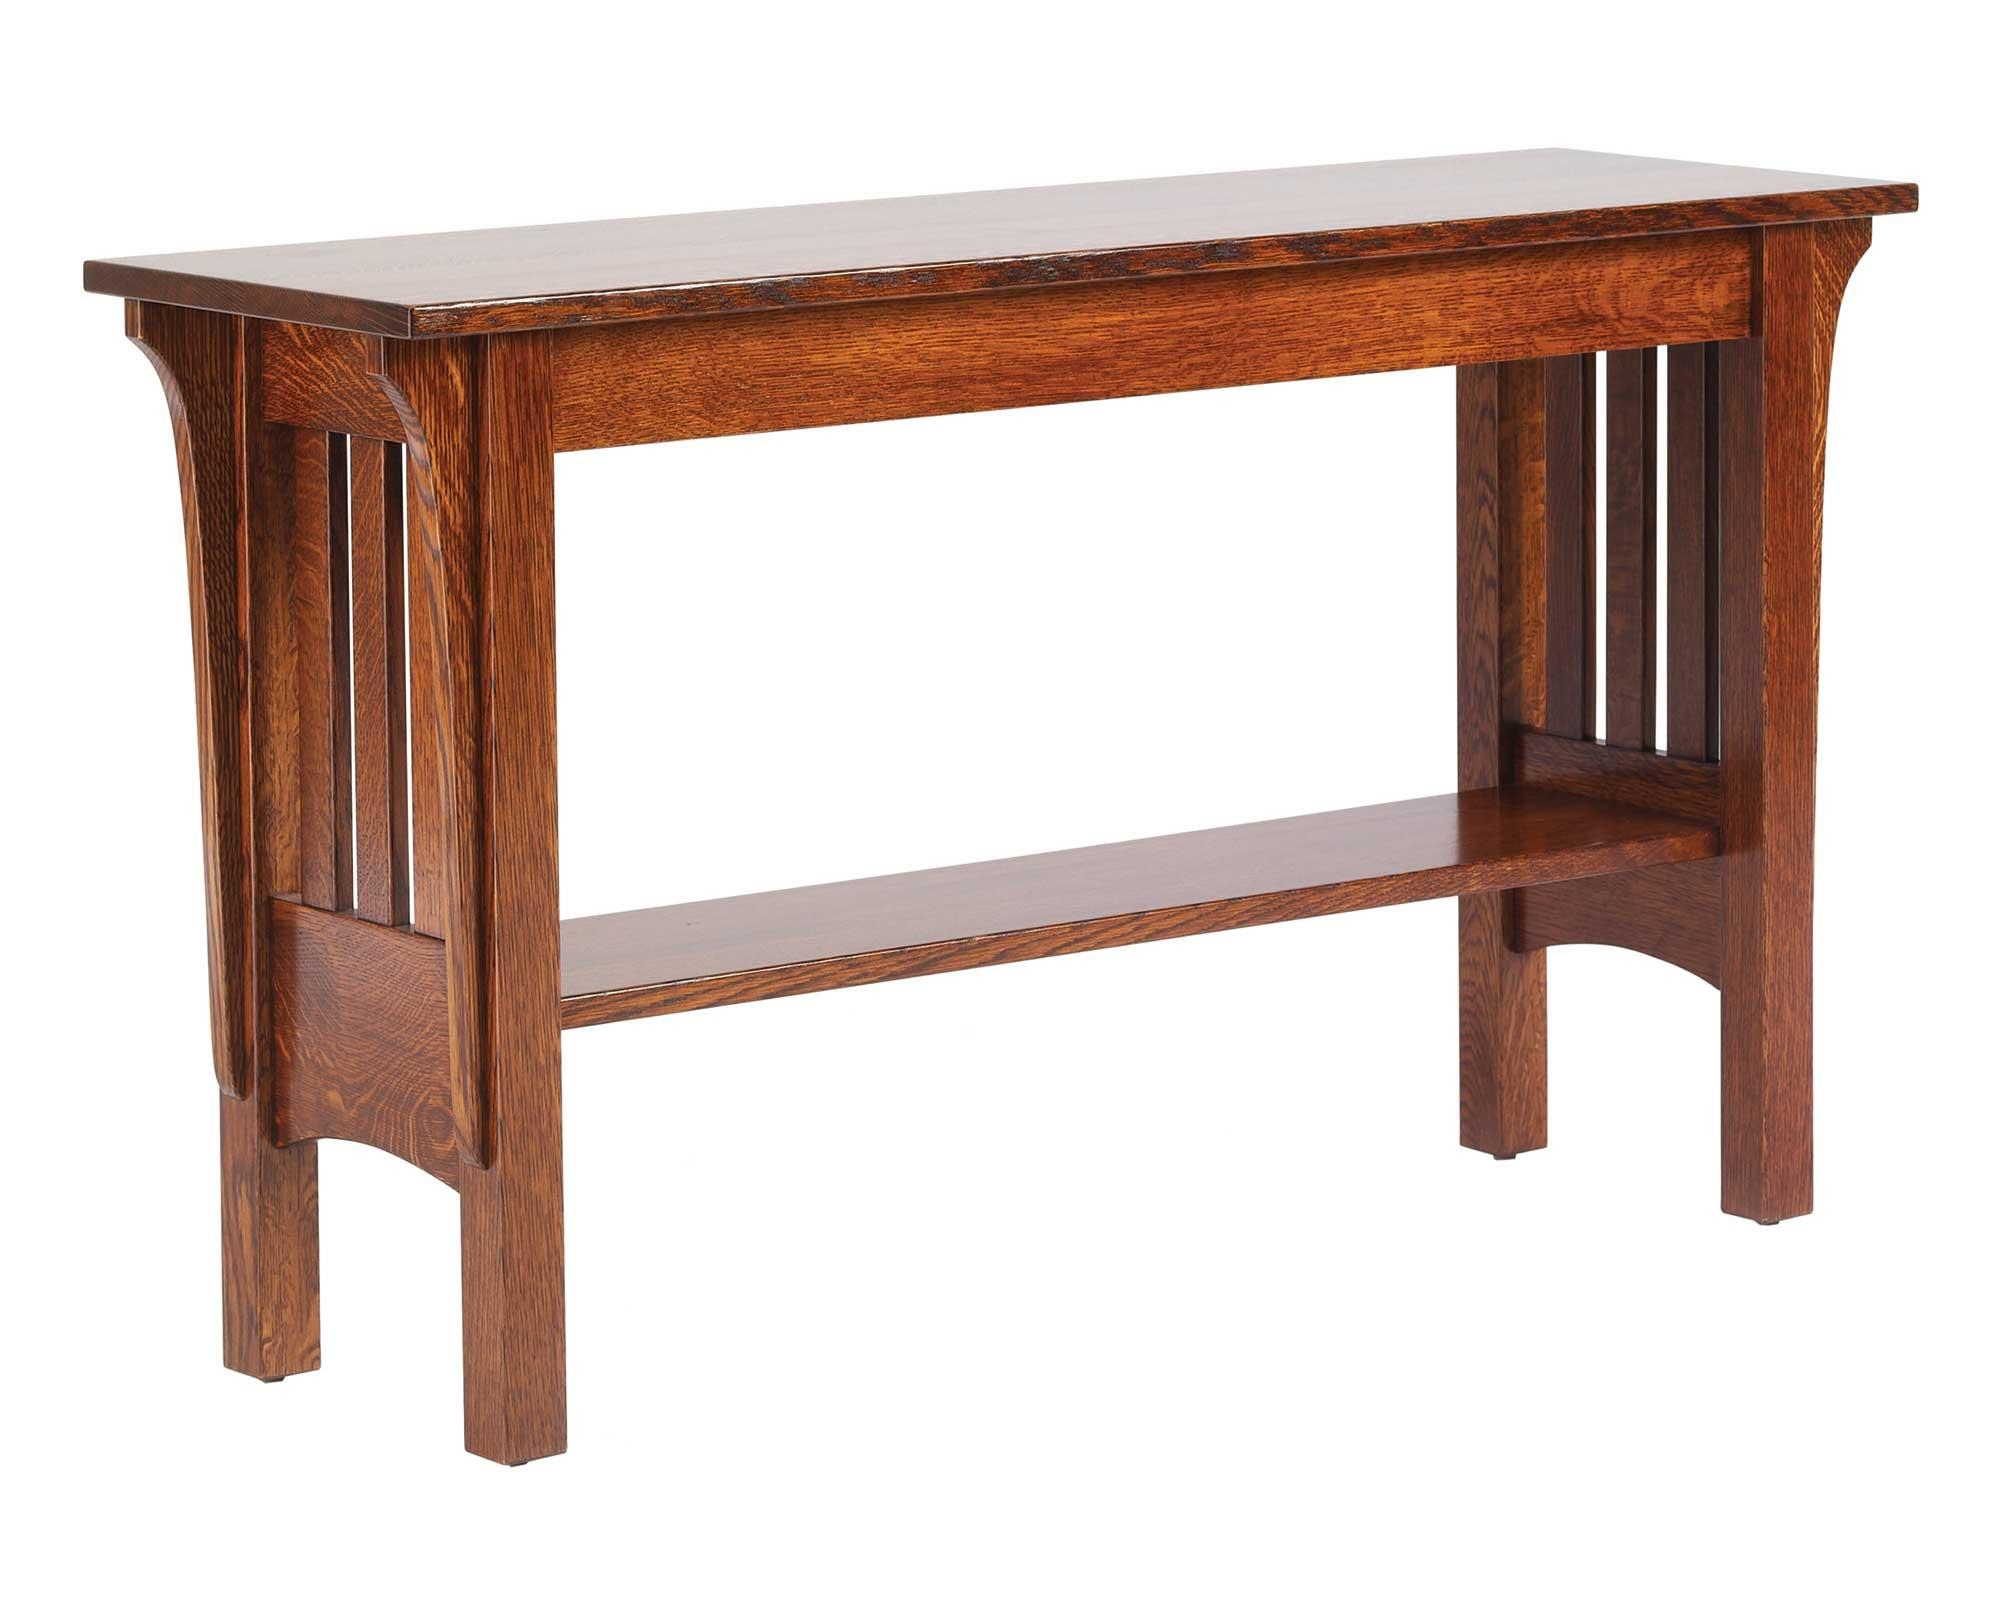 Cherry Wood Sofa Table With Ideas Hd Gallery 13495 | Kengire With Regard To Cherry Wood Sofa Tables (View 2 of 20)